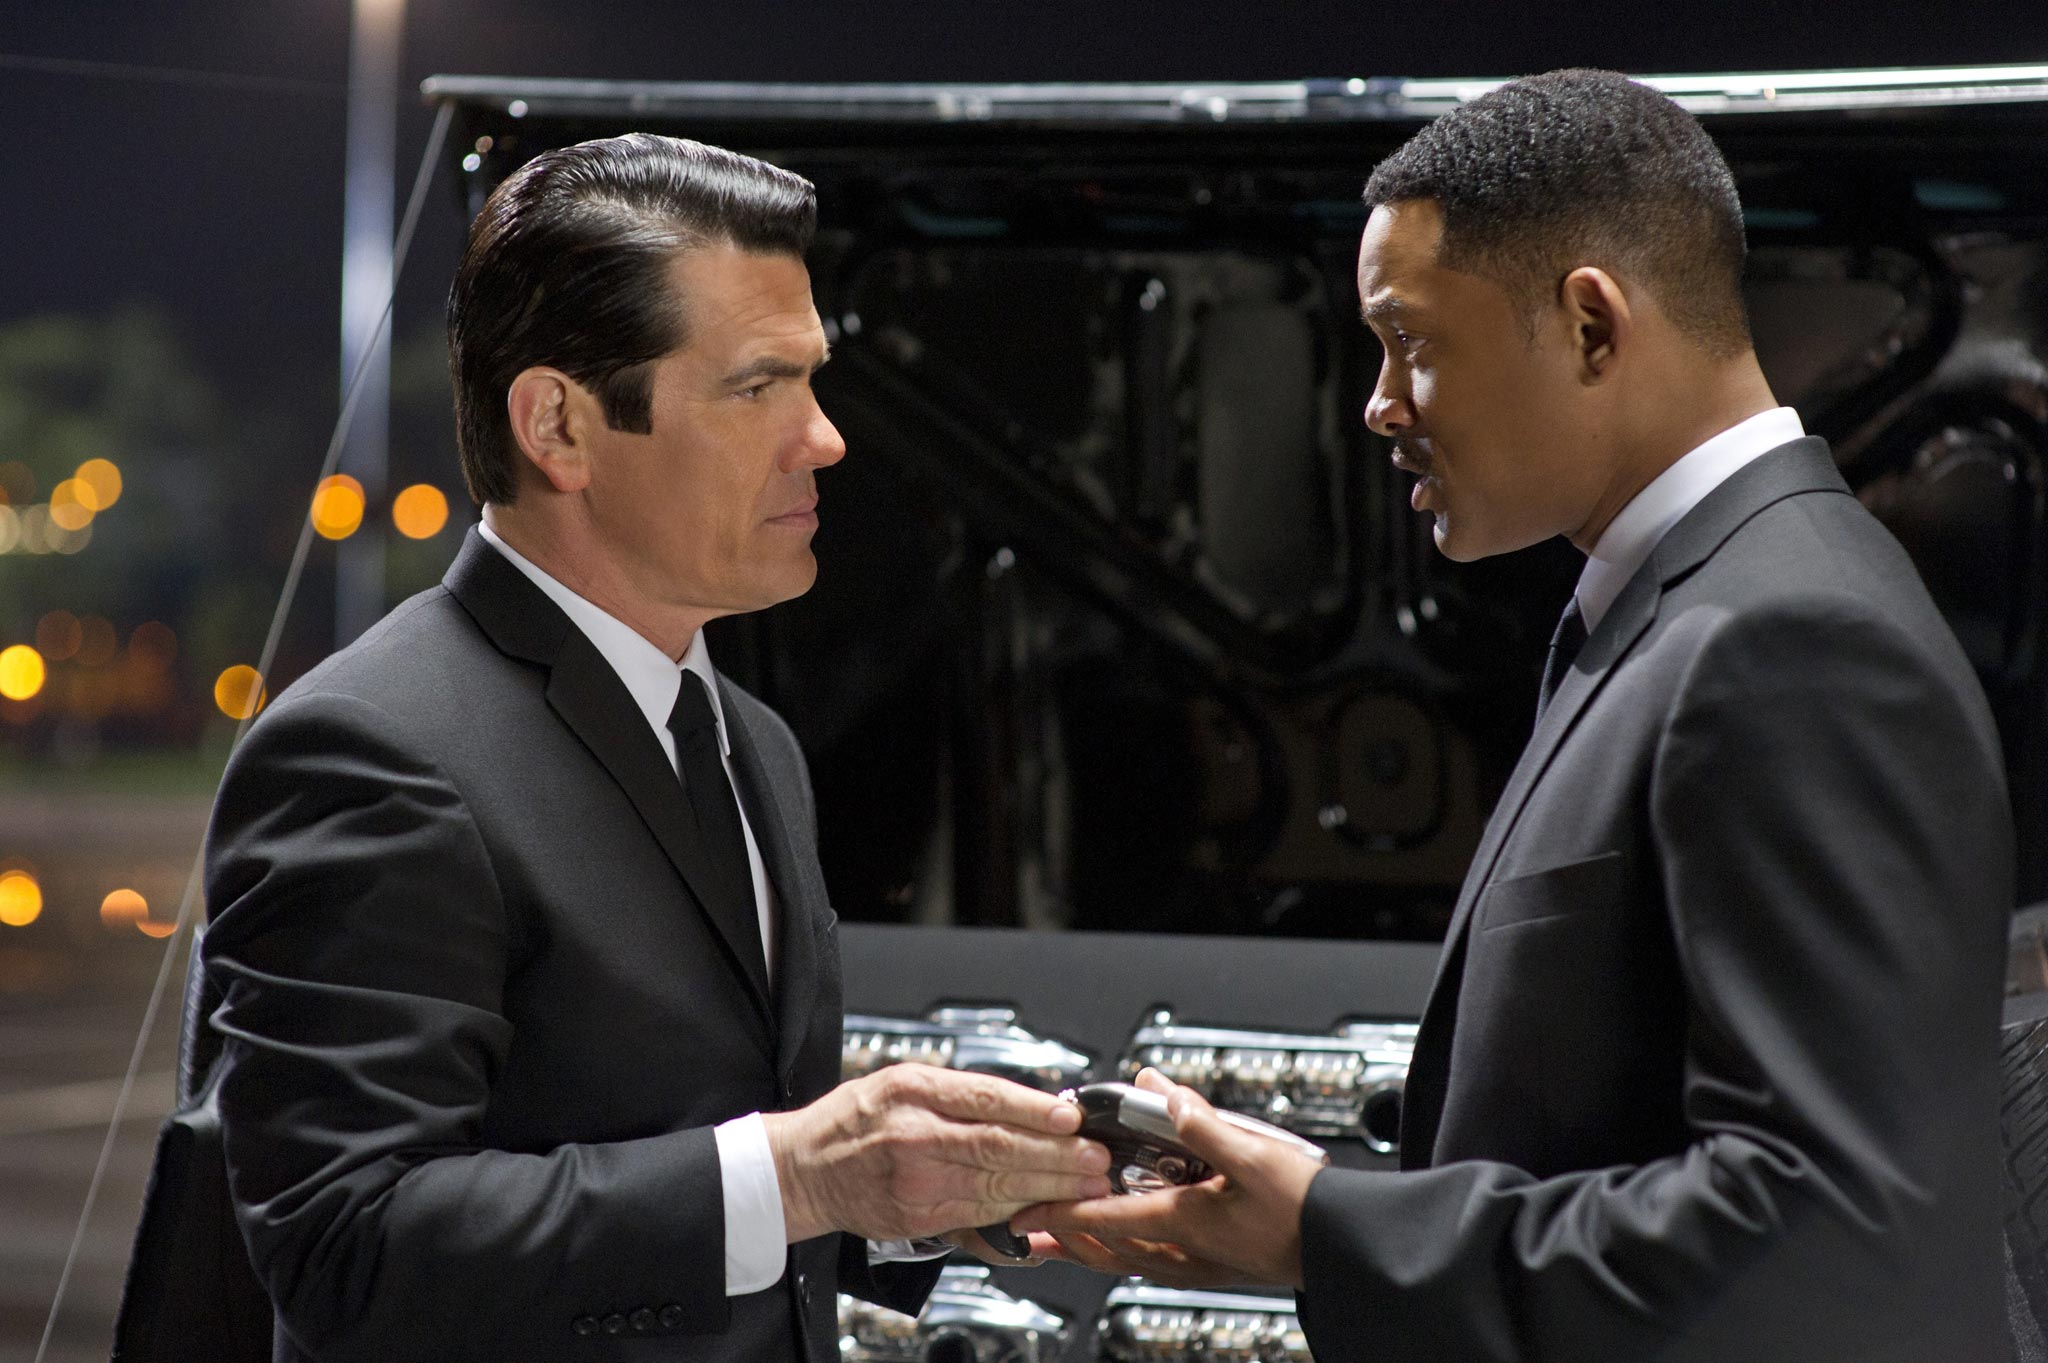 PARTNERS IN TIME. Josh Brolin and Will Smith trigger good chemistry.